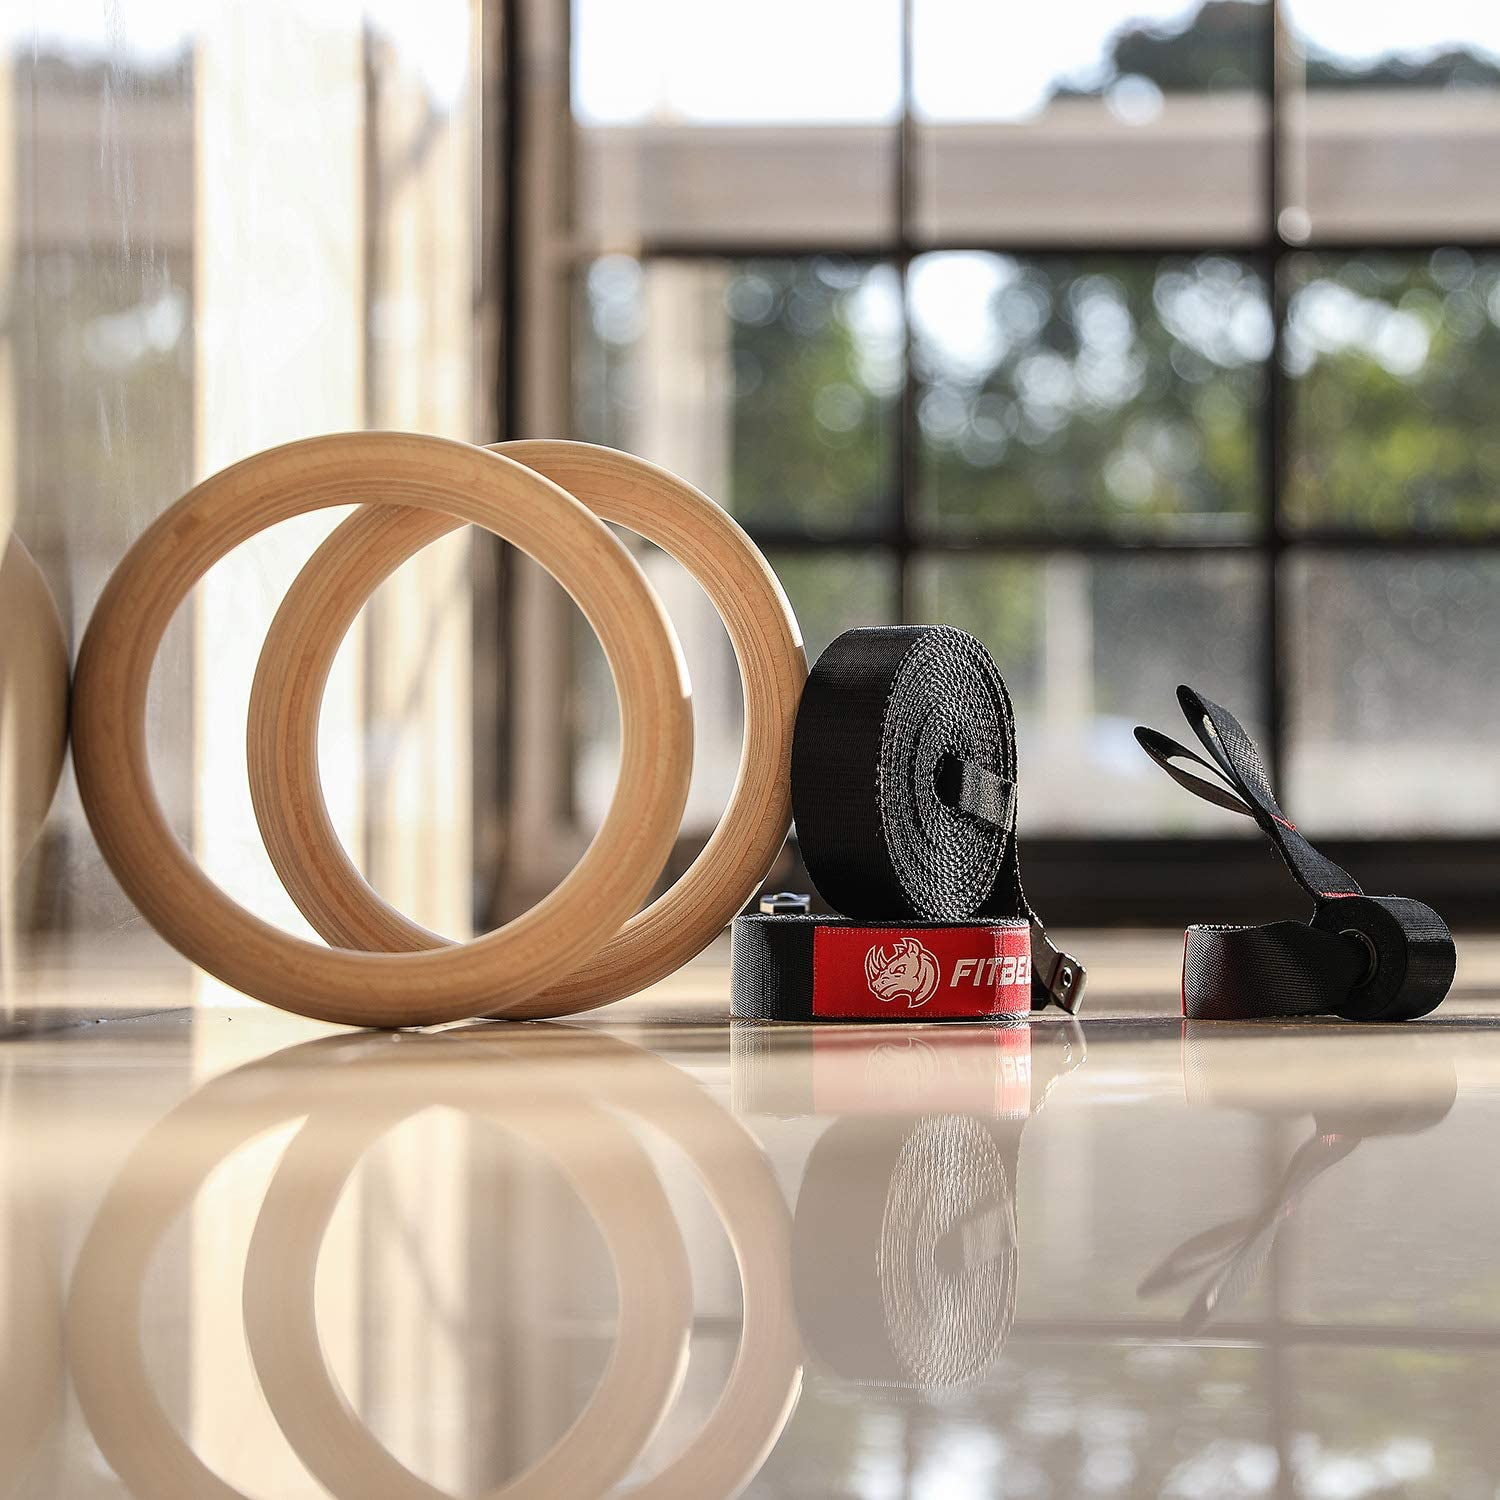 Buy FitBeast Wood Gymnastic Rings, Olympic Rings 1600lbs with Adjustable Buckle 15ft Long Straps Gym Exercise Rings Non-Slip Training Rings for Cross-Training Workout and Home Gym Full Body Workout Online in Canada.